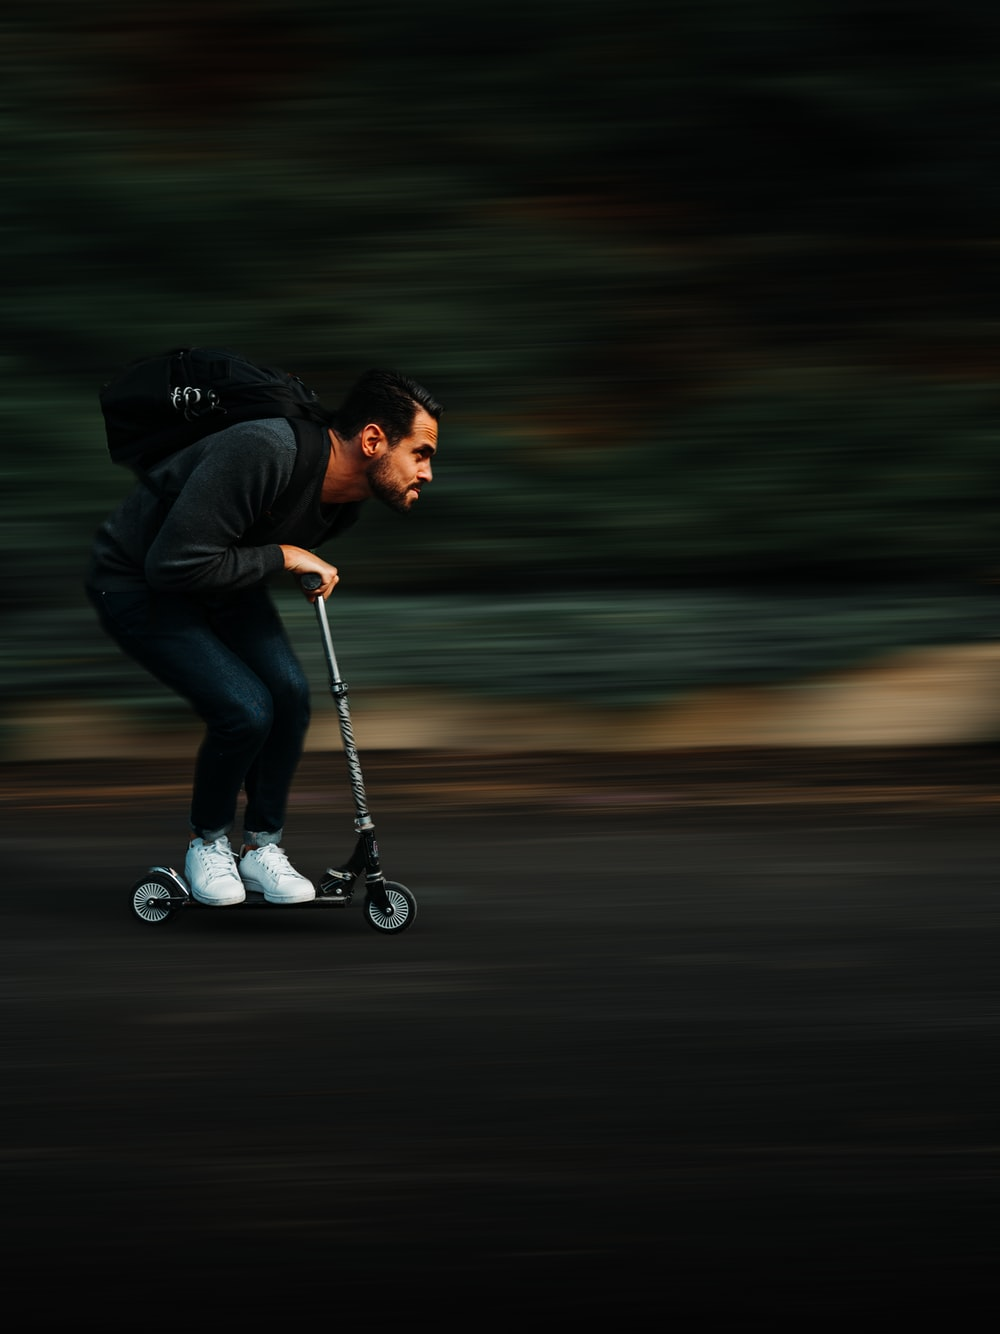 Scooter Pictures [HD] | Download Free Images on Unsplash